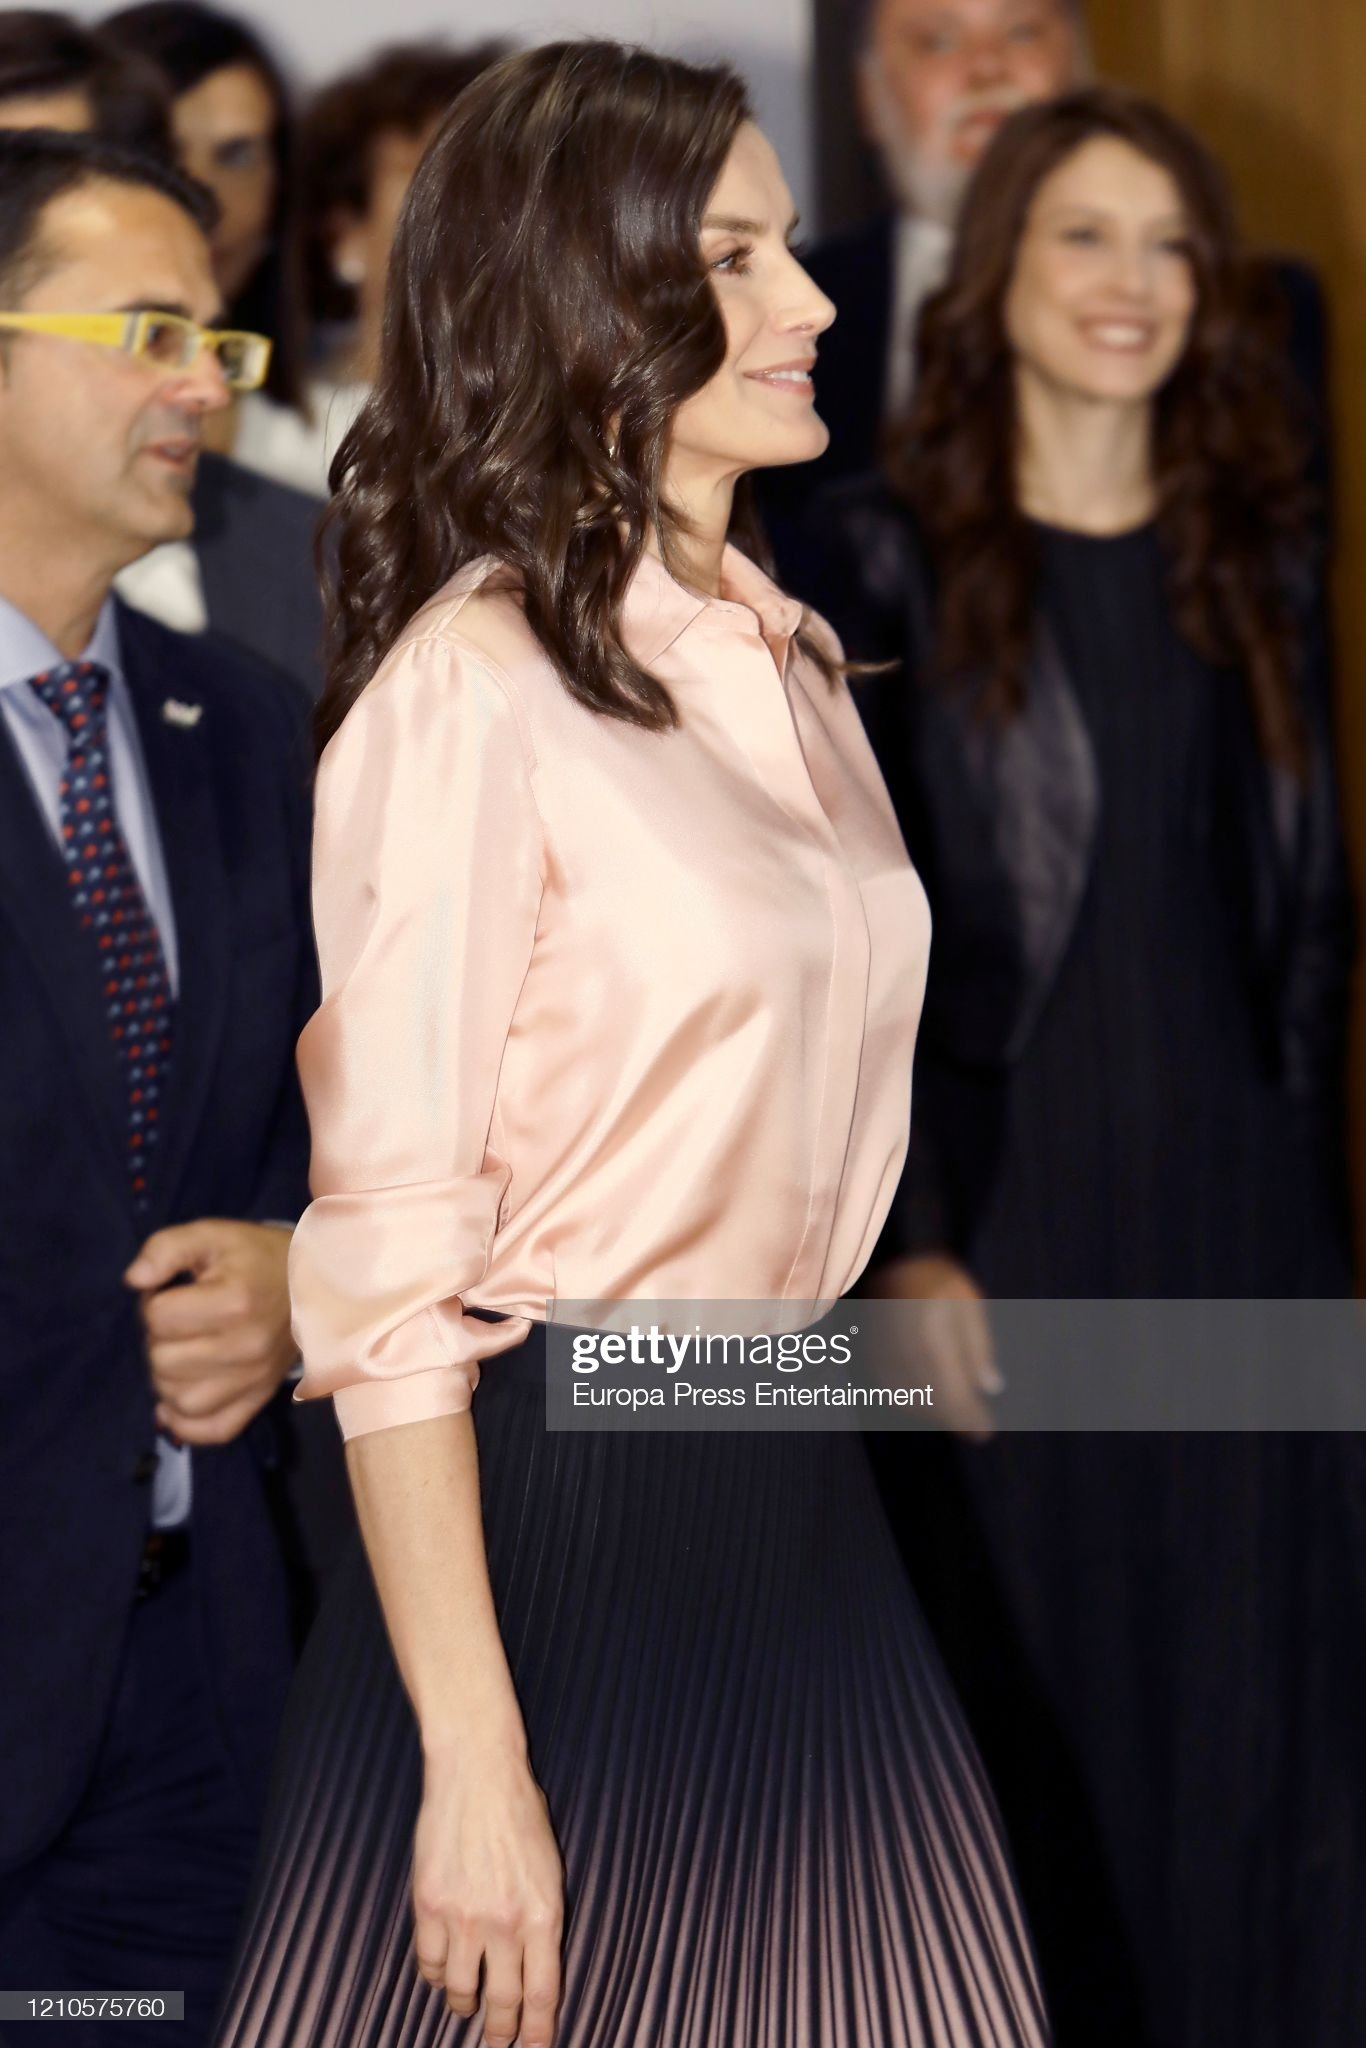 https://media.gettyimages.com/photos/queen-letizia-of-spain-attends-the-rare-diseases-world-day-event-at-picture-id1210575760?s=2048x2048